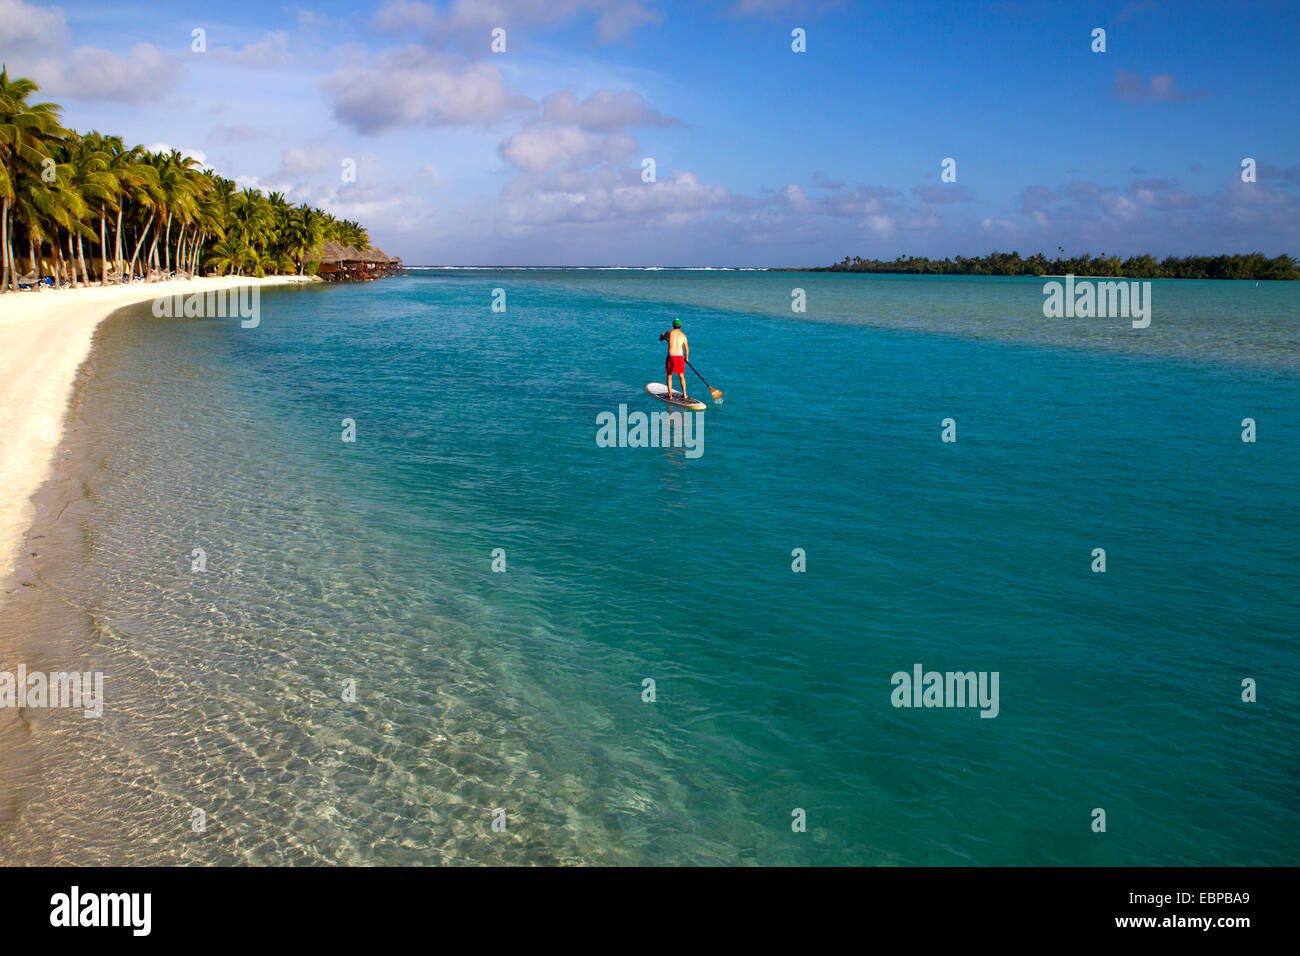 Stand-up paddle boarding in the Aitutaki lagoon - Stock Image